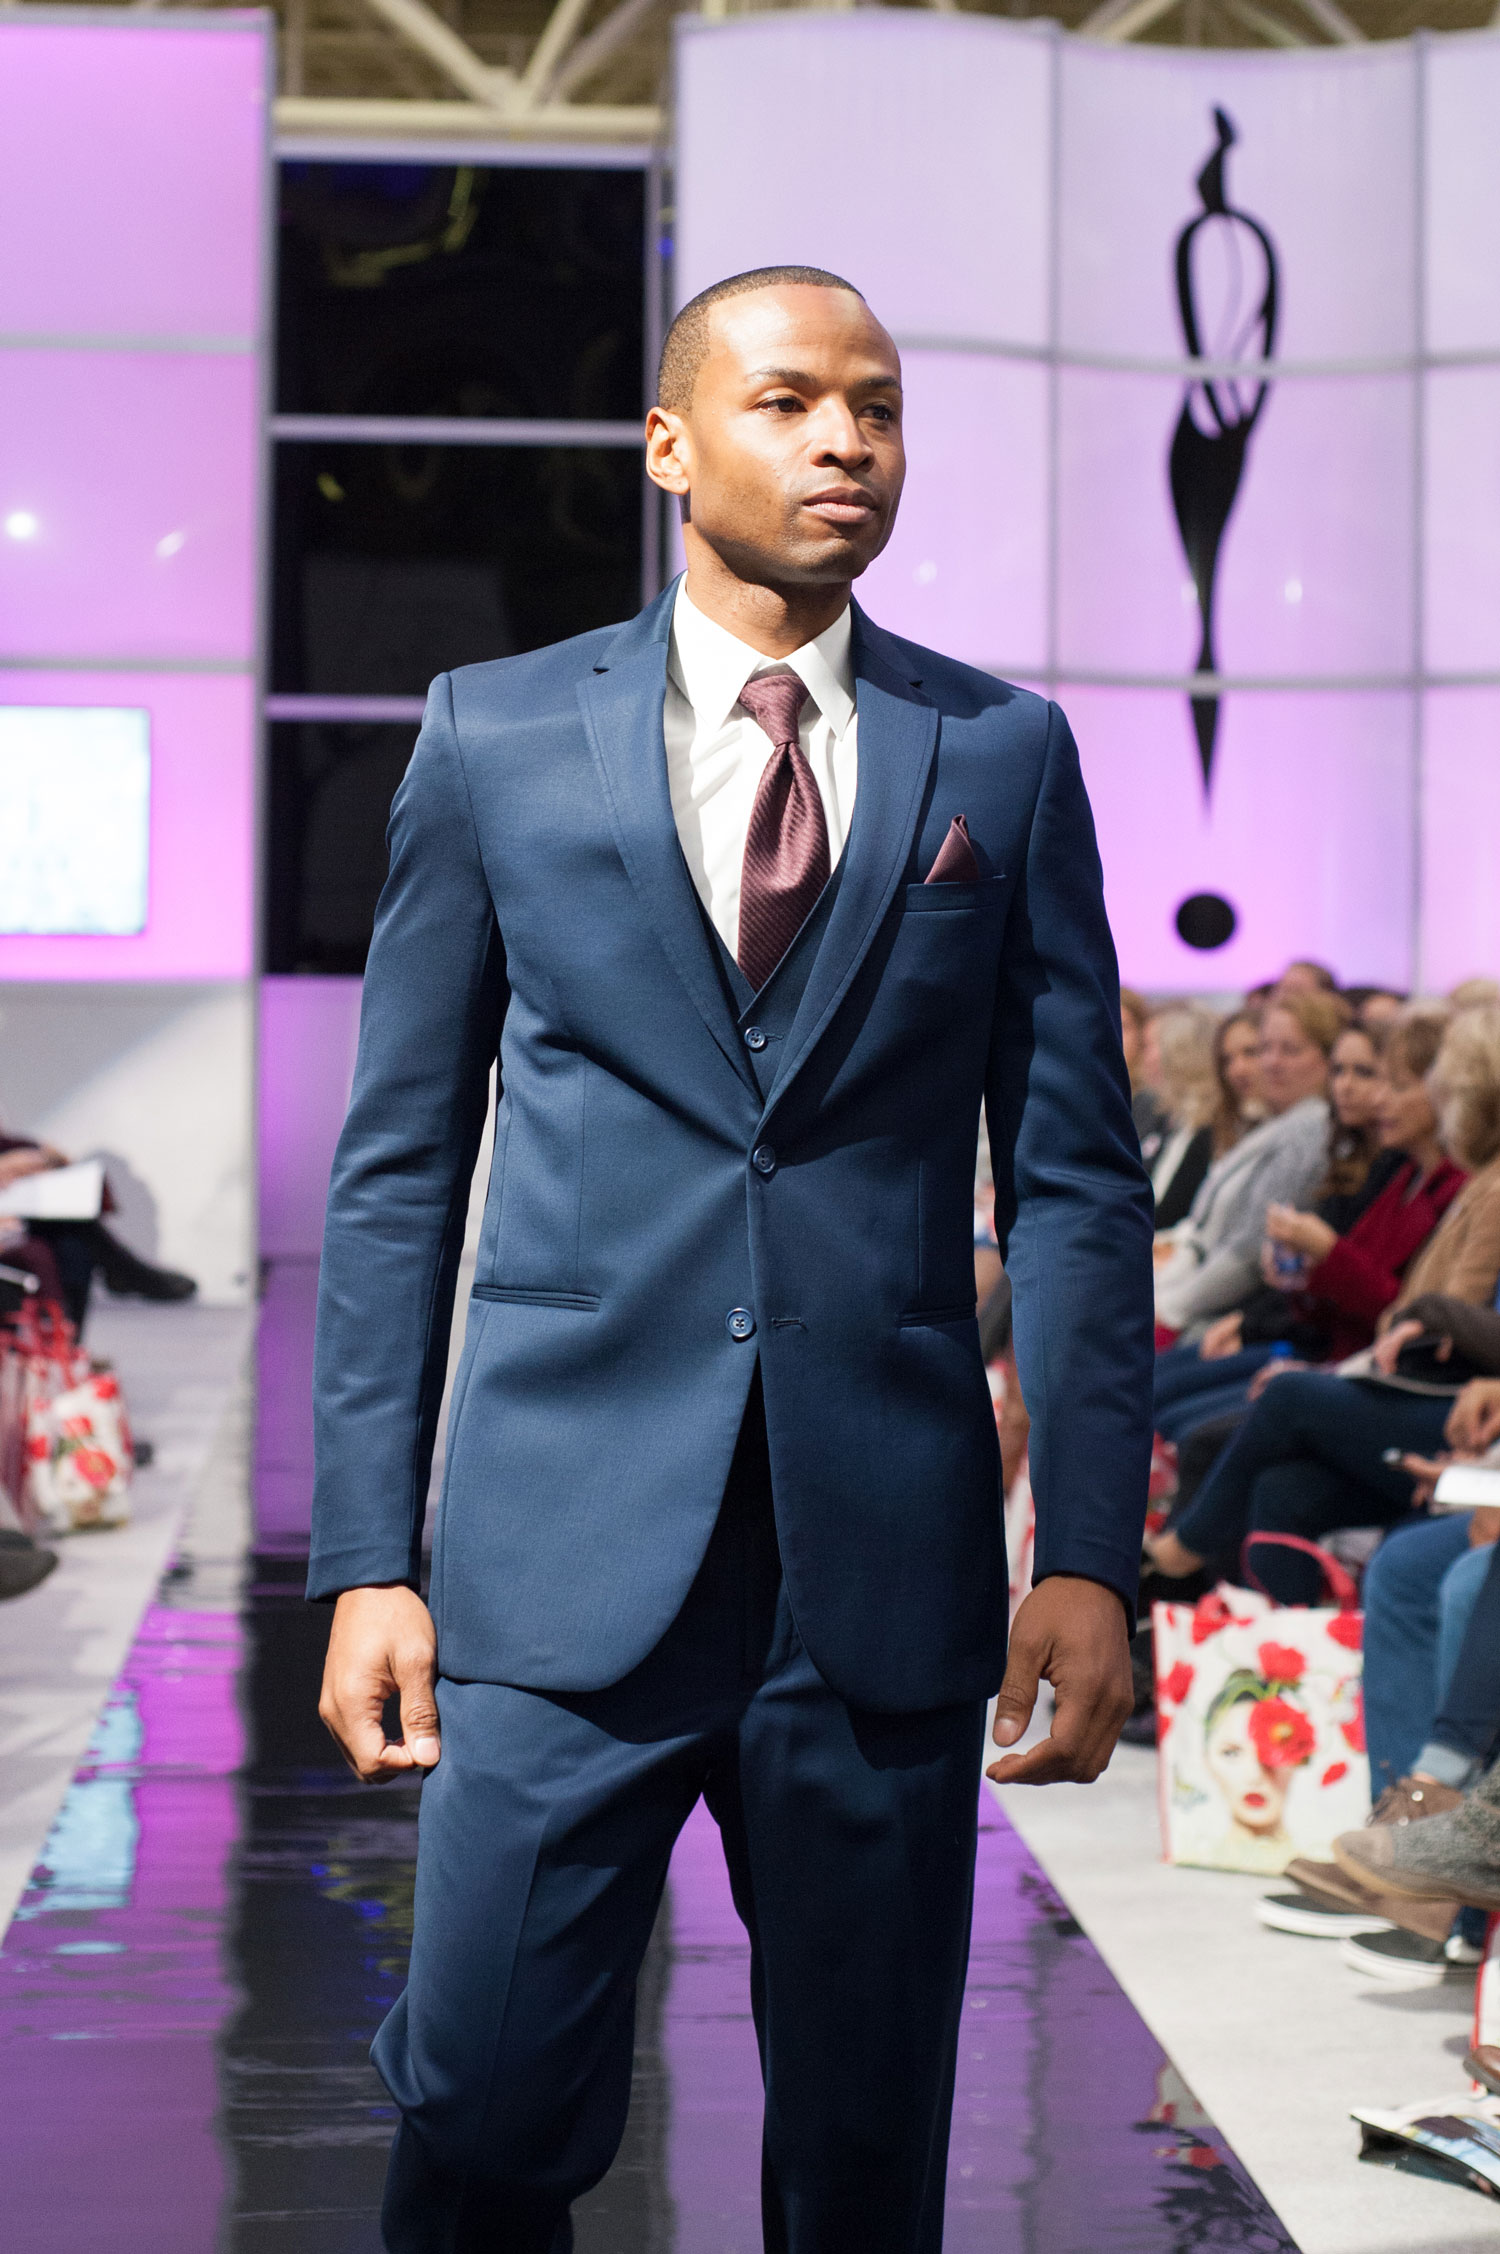 UNVEILED - The Ultimate Wedding Planning Event by The Wedding Guys in Minnesota - fashion show men's attire groom